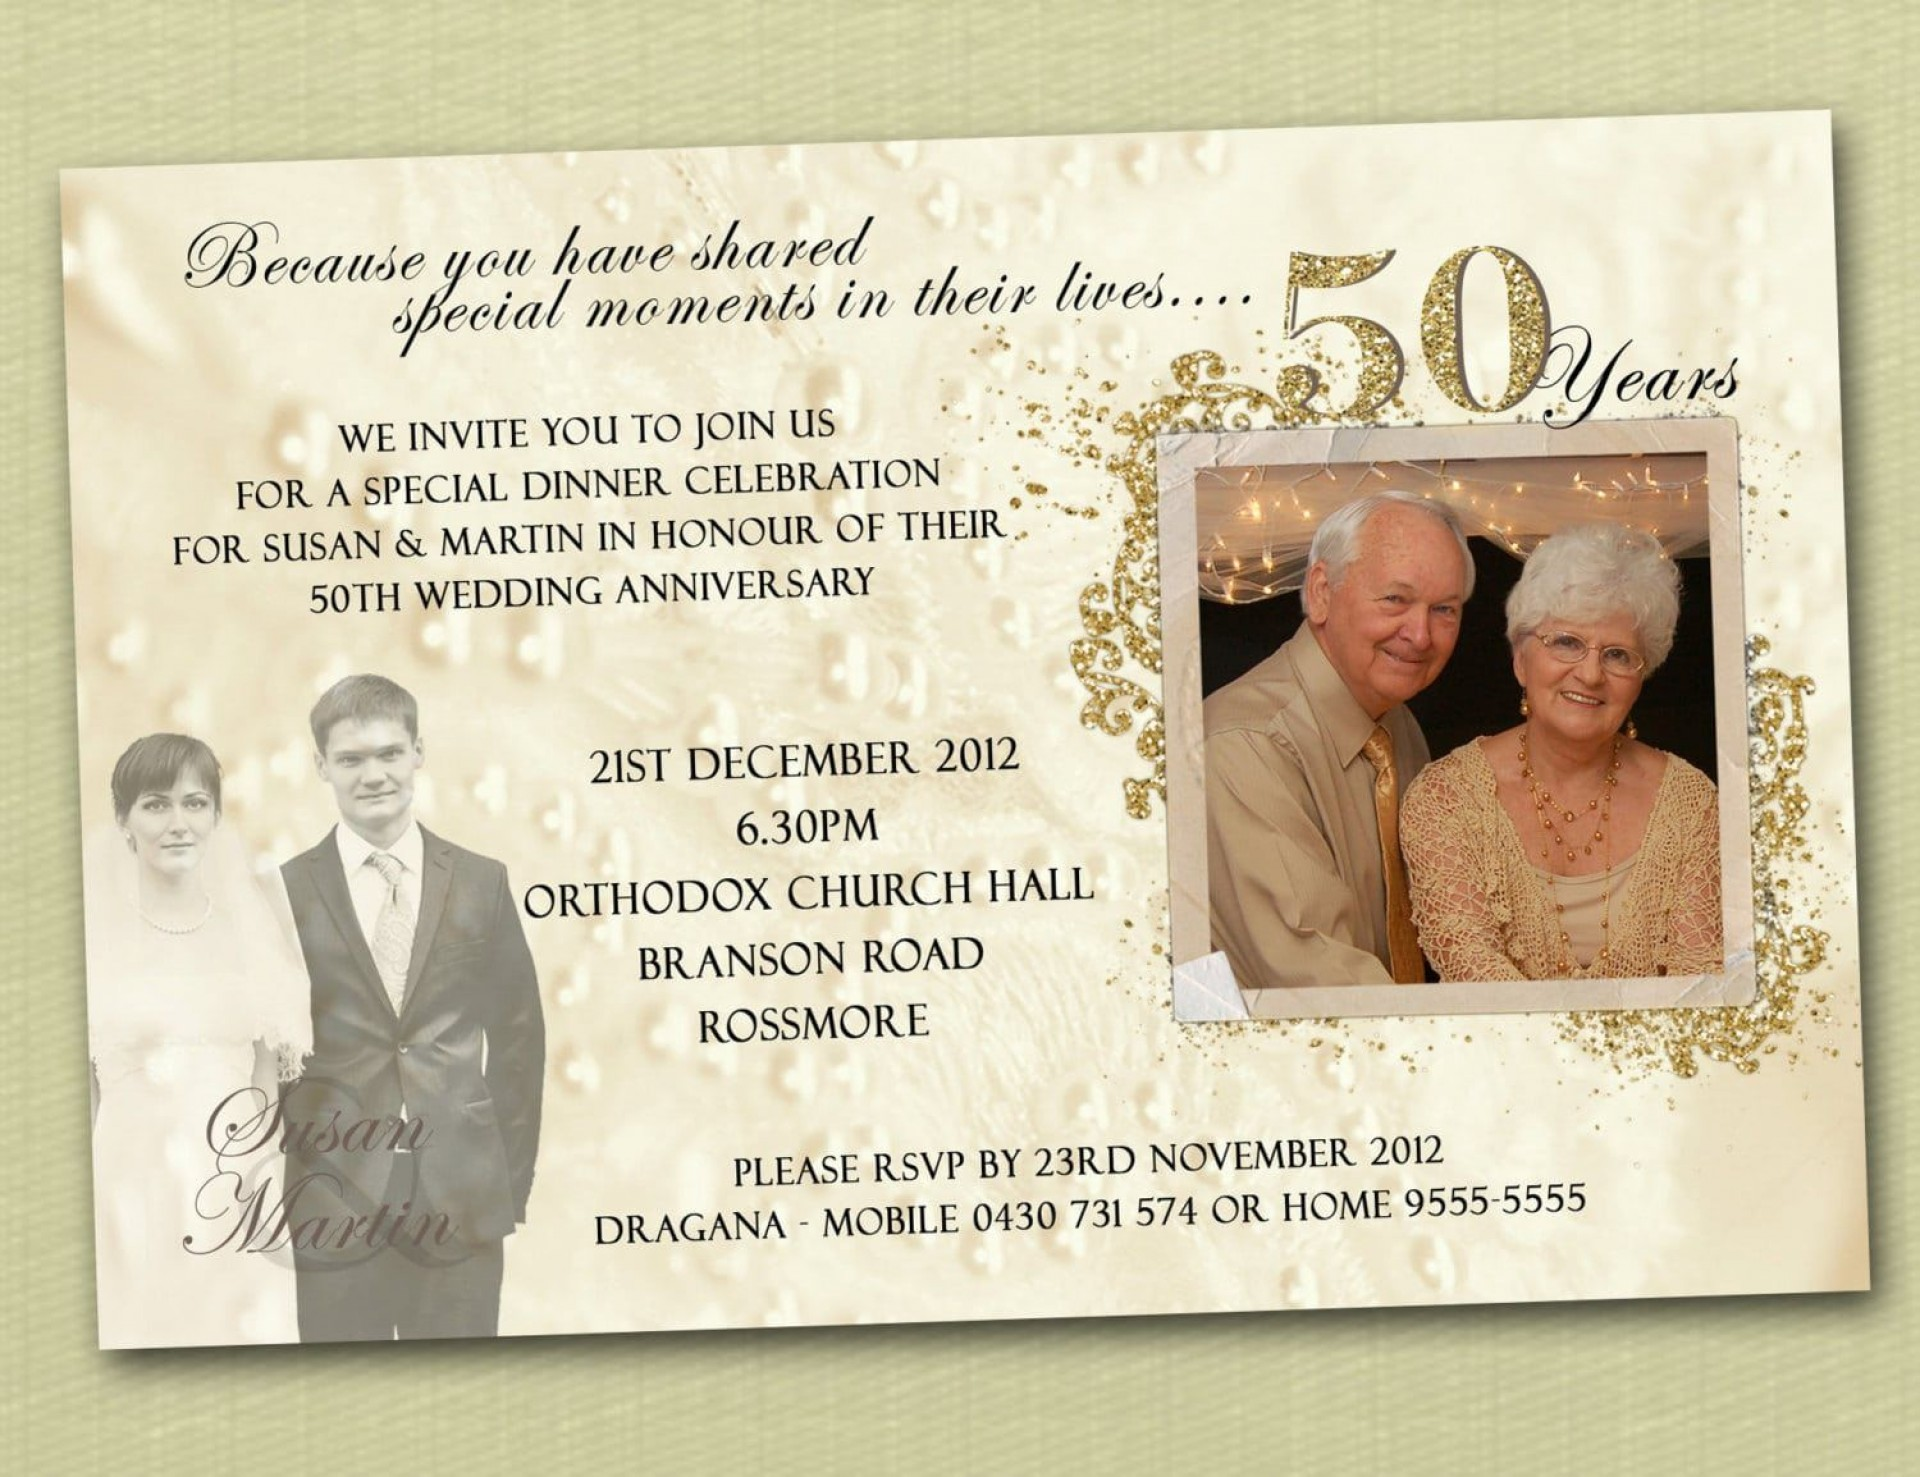 009 Exceptional 50th Anniversary Party Invitation Template High Def  Templates Golden Wedding Uk Microsoft Word Free1920